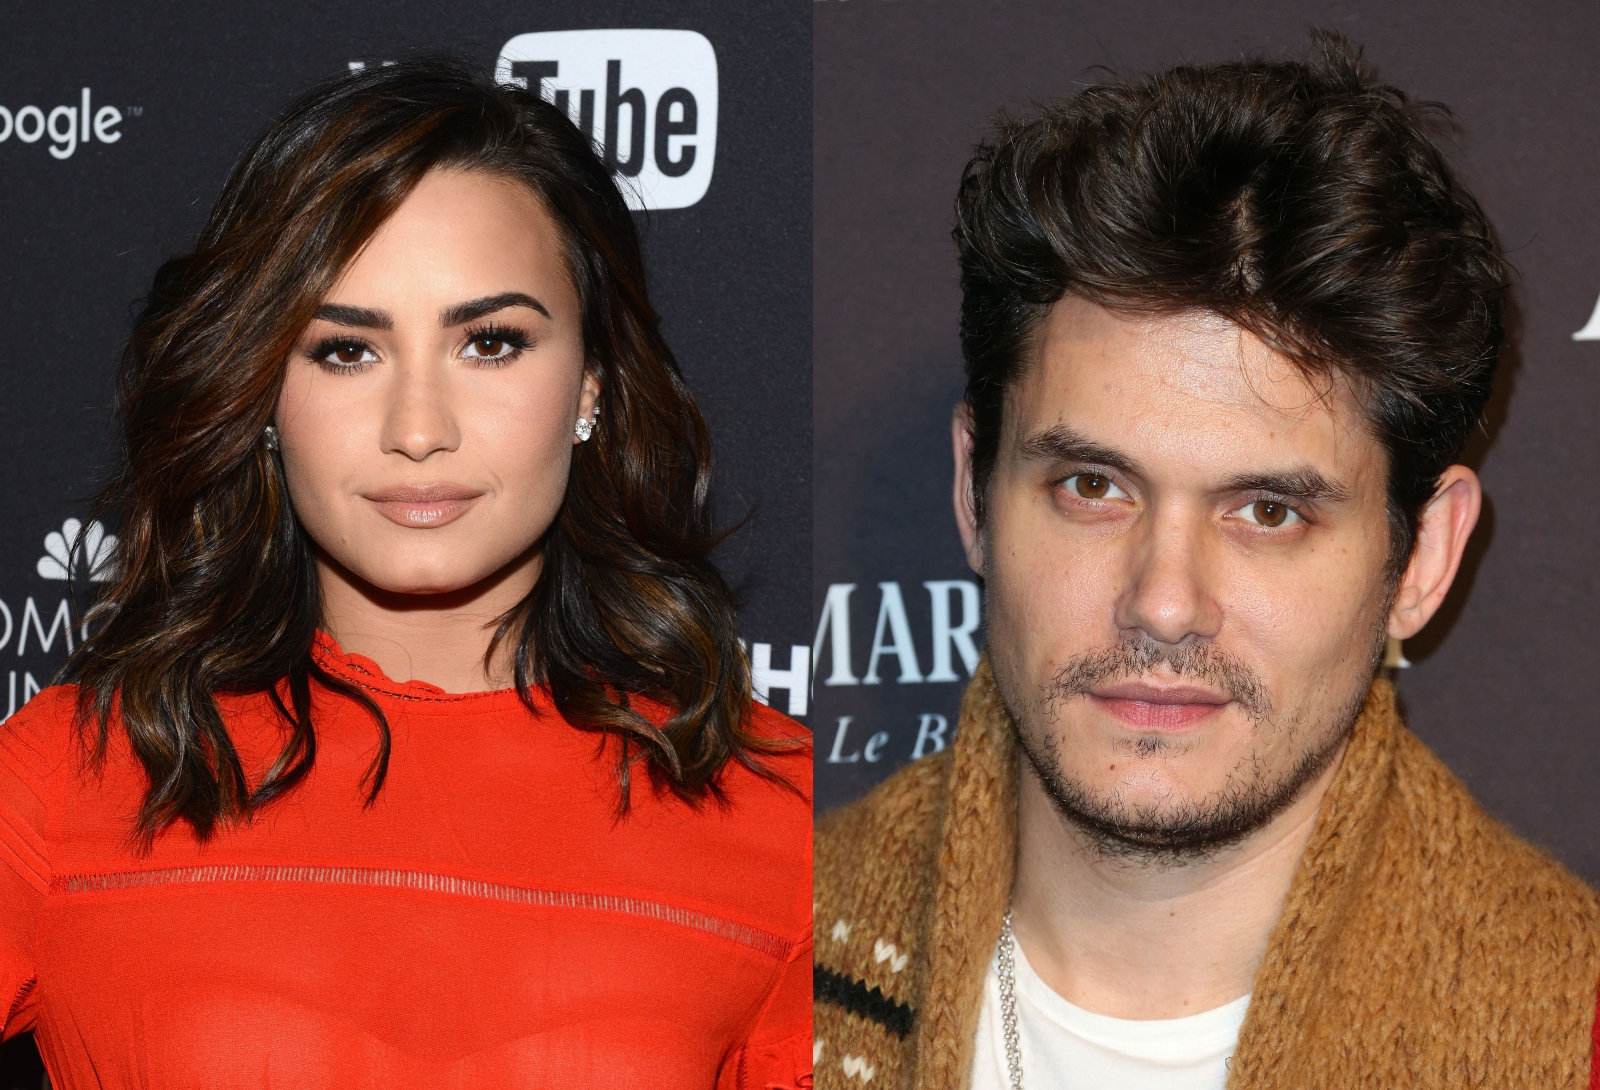 John Mayer and Demi Lovato